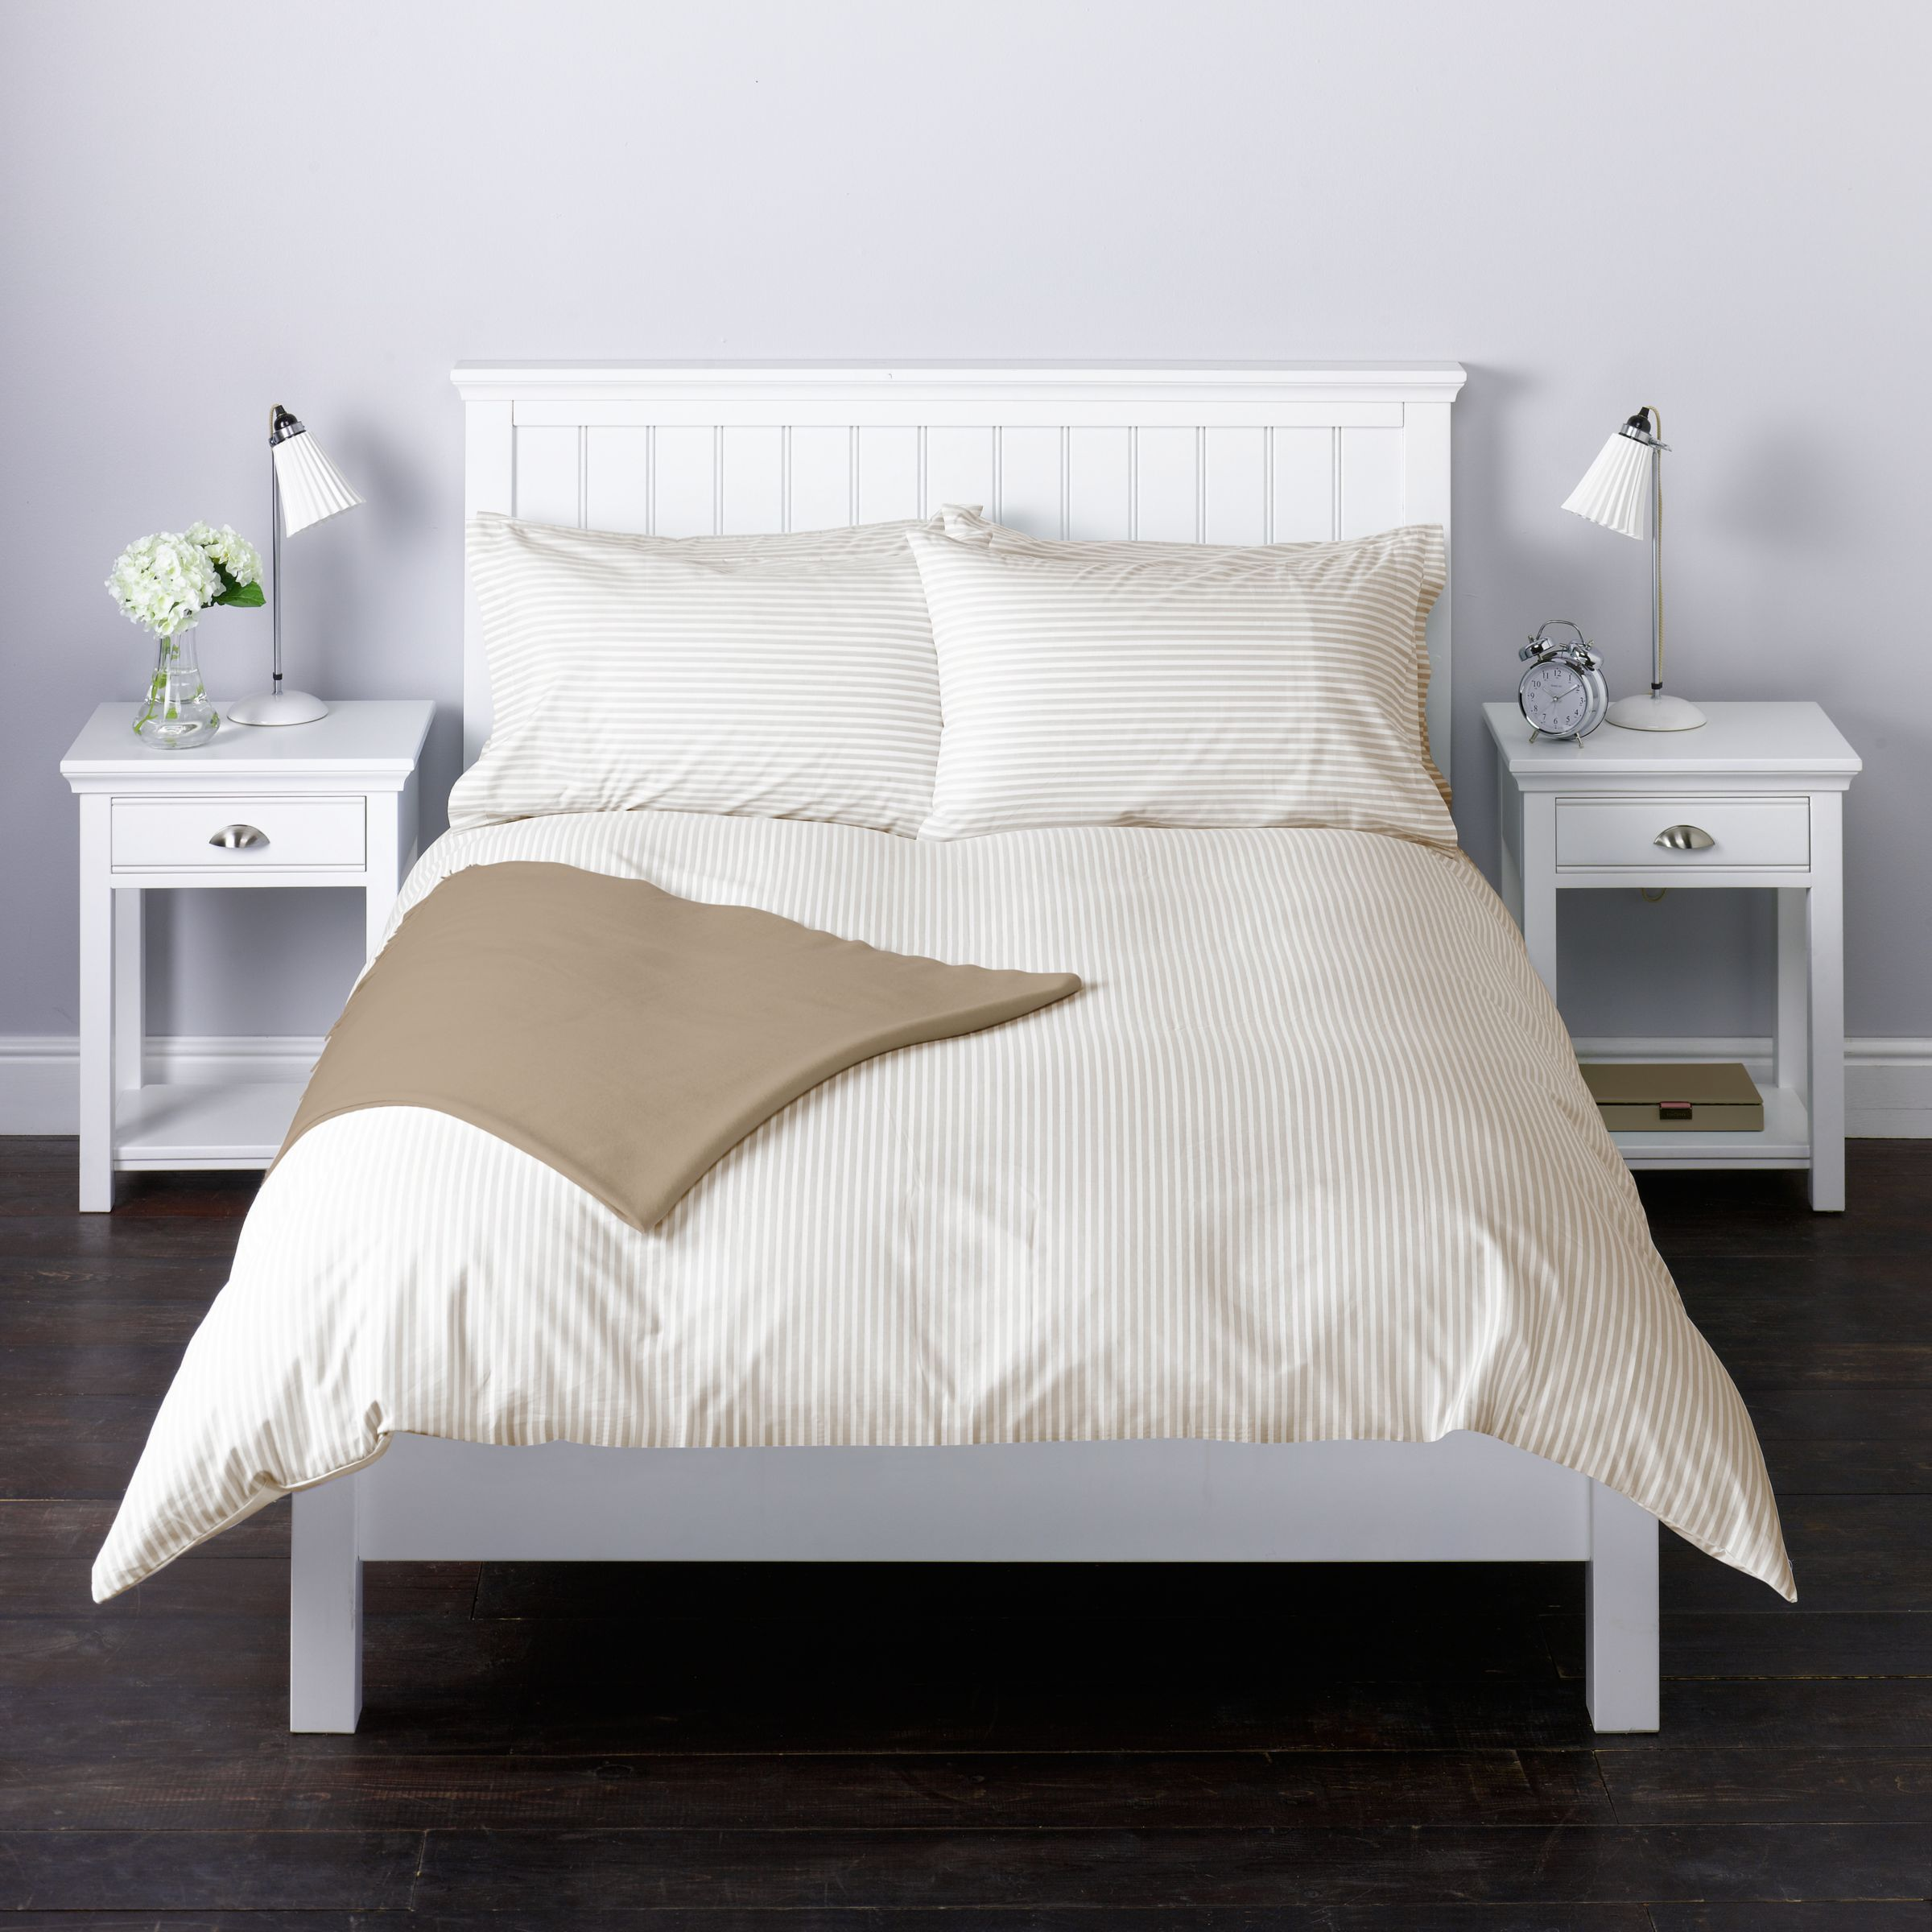 john lewis bedroom furniture